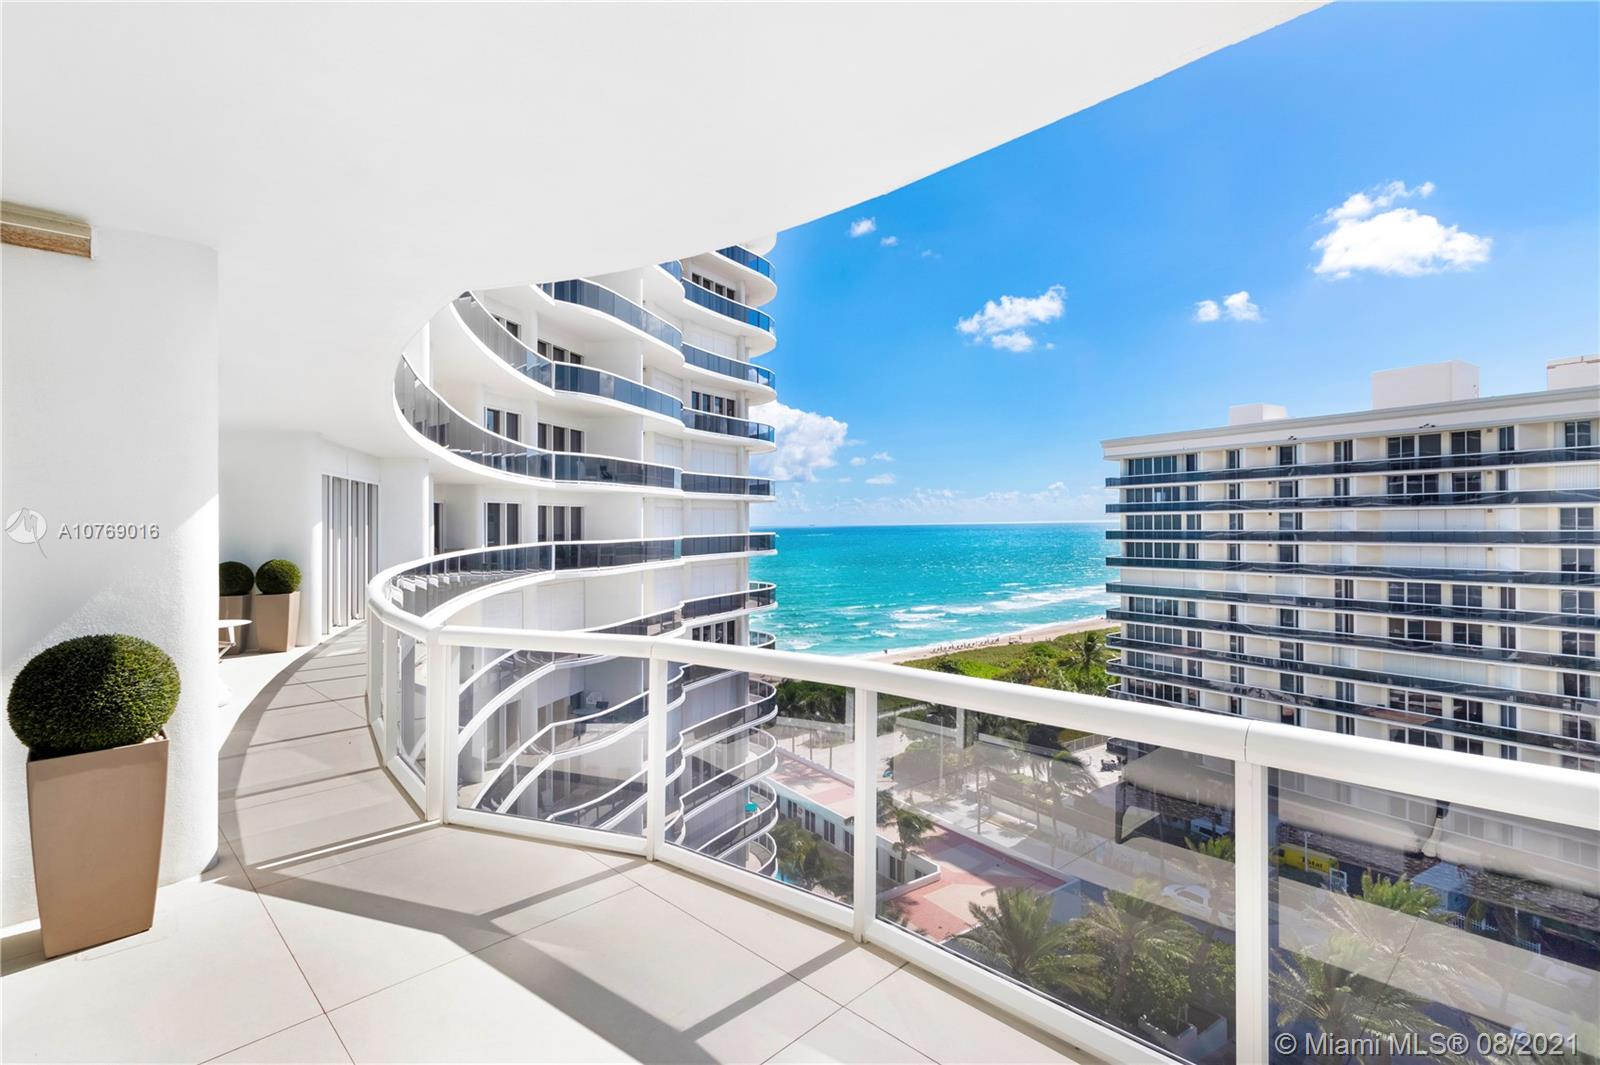 9601  Collins Ave #1009 For Sale A10769016, FL